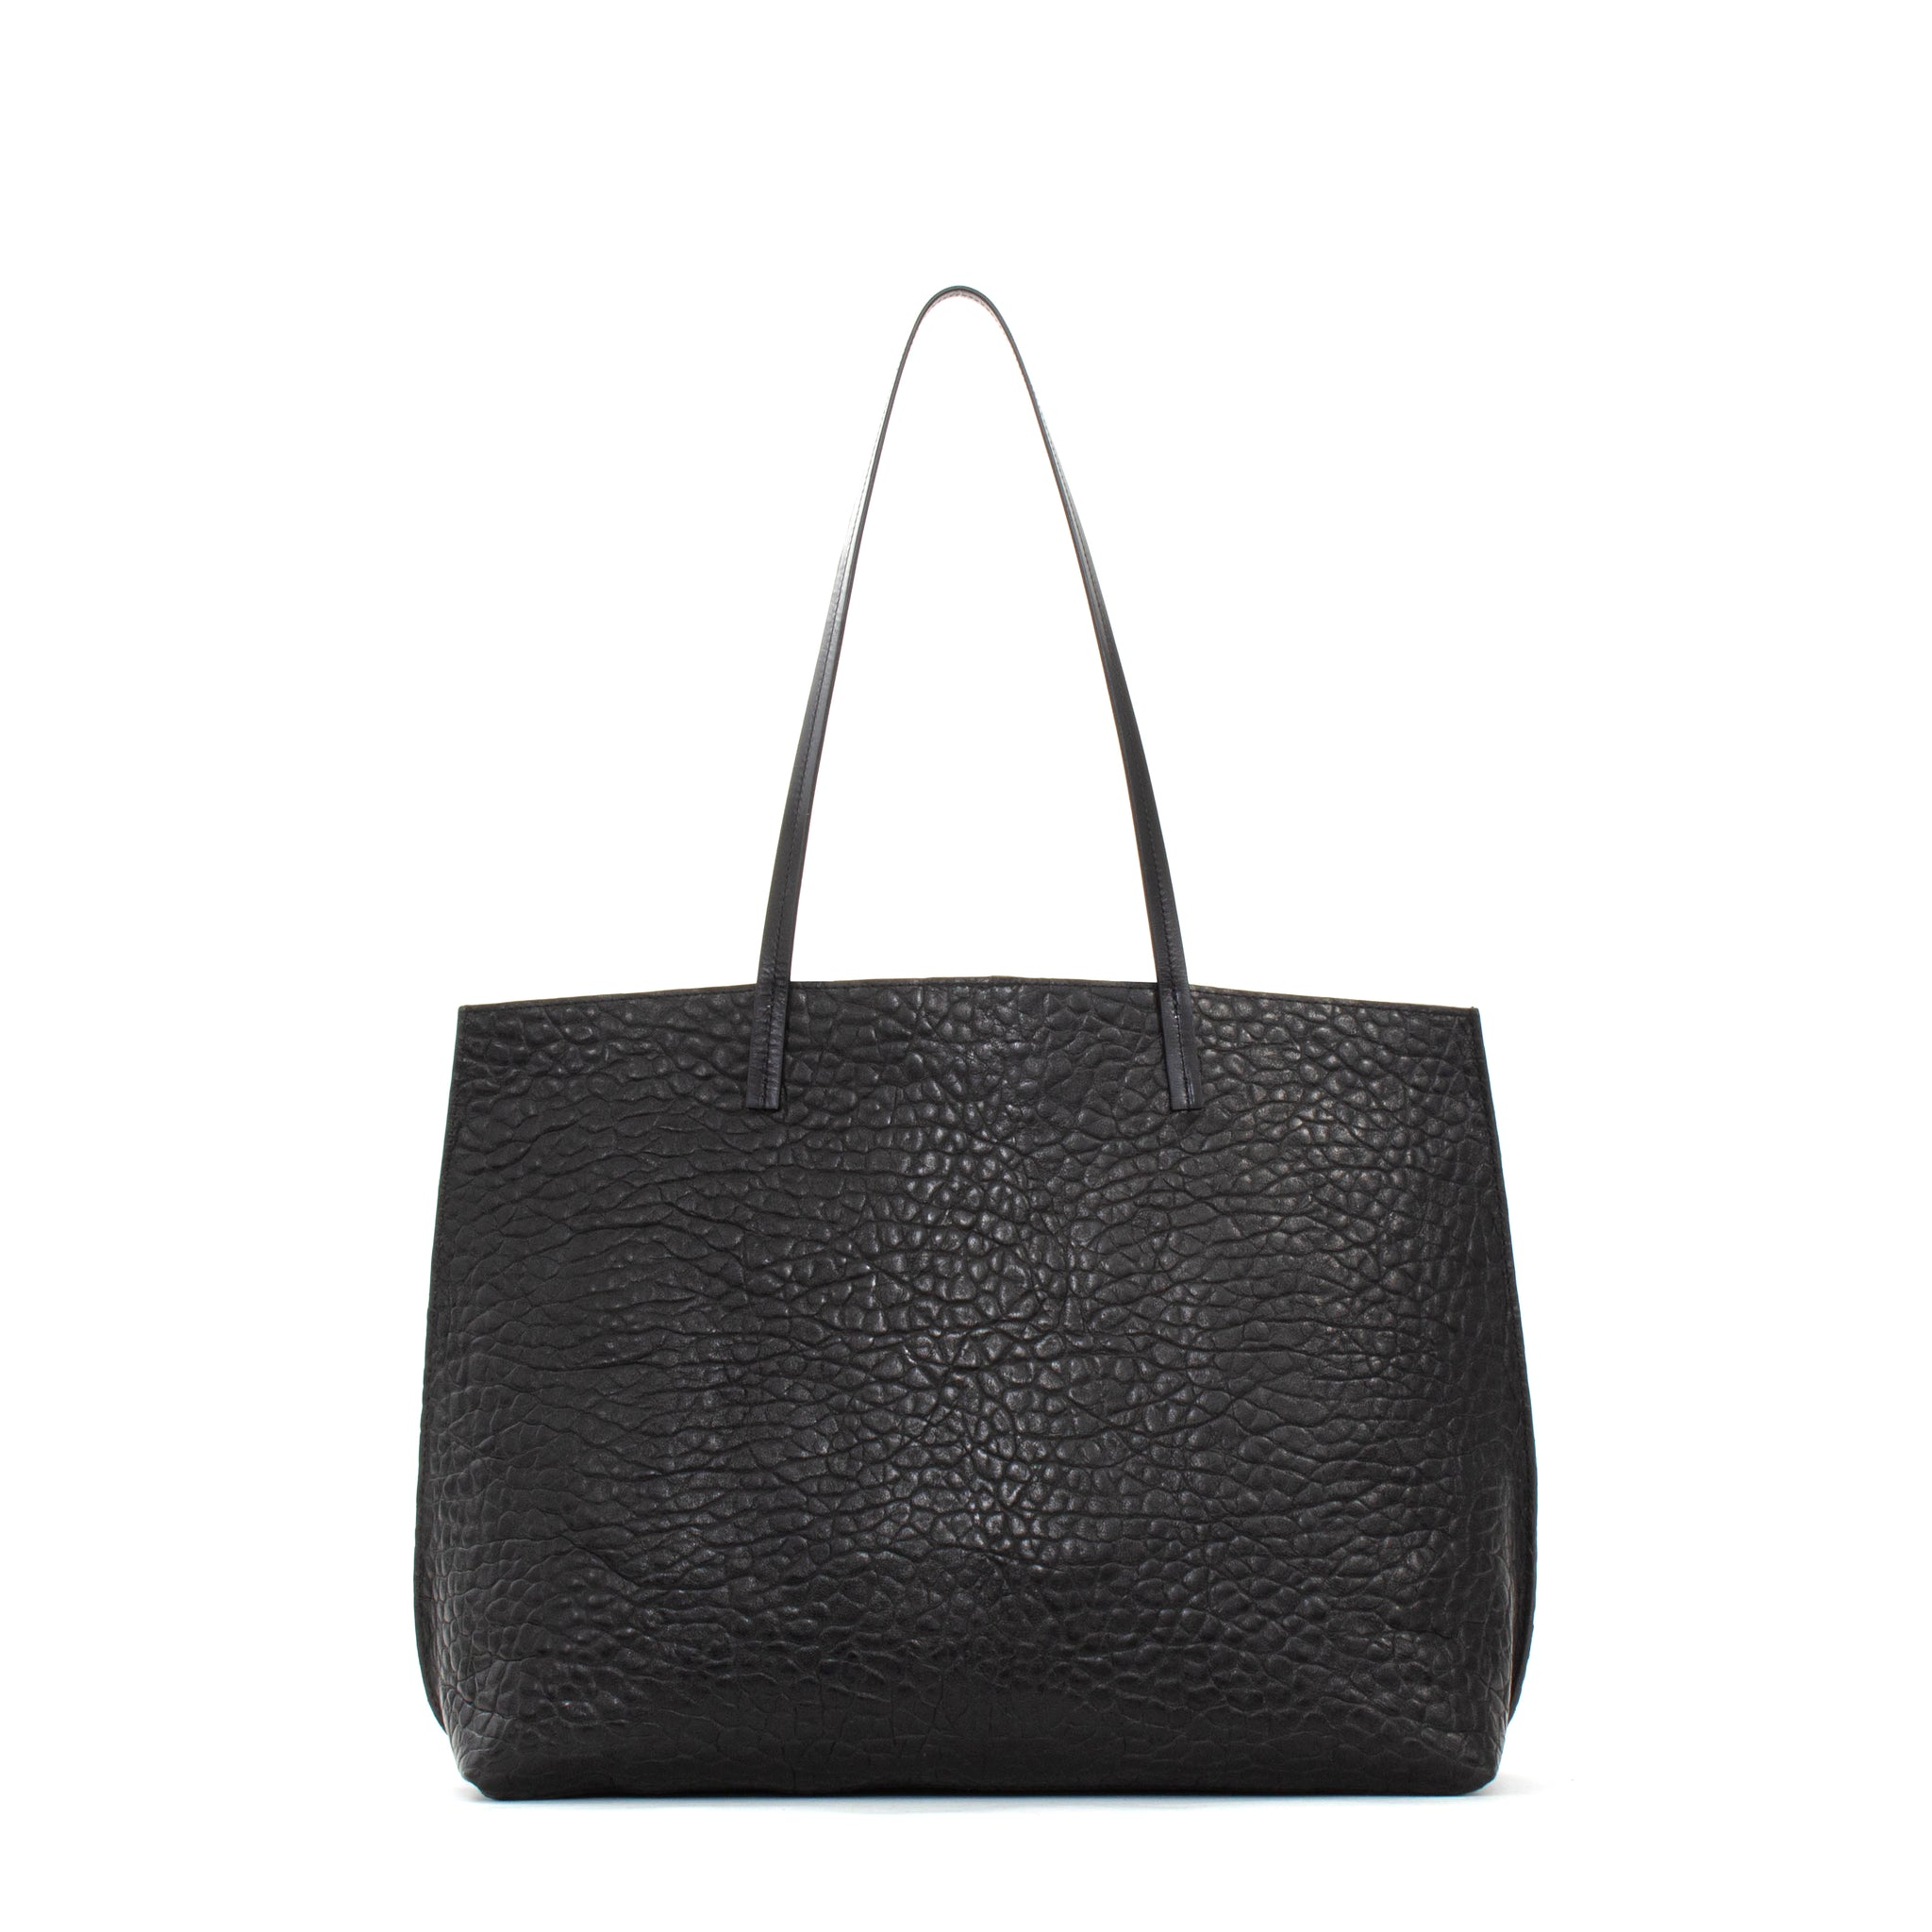 CLASSIC SHOPPER LICORICE SHEEPSKIN